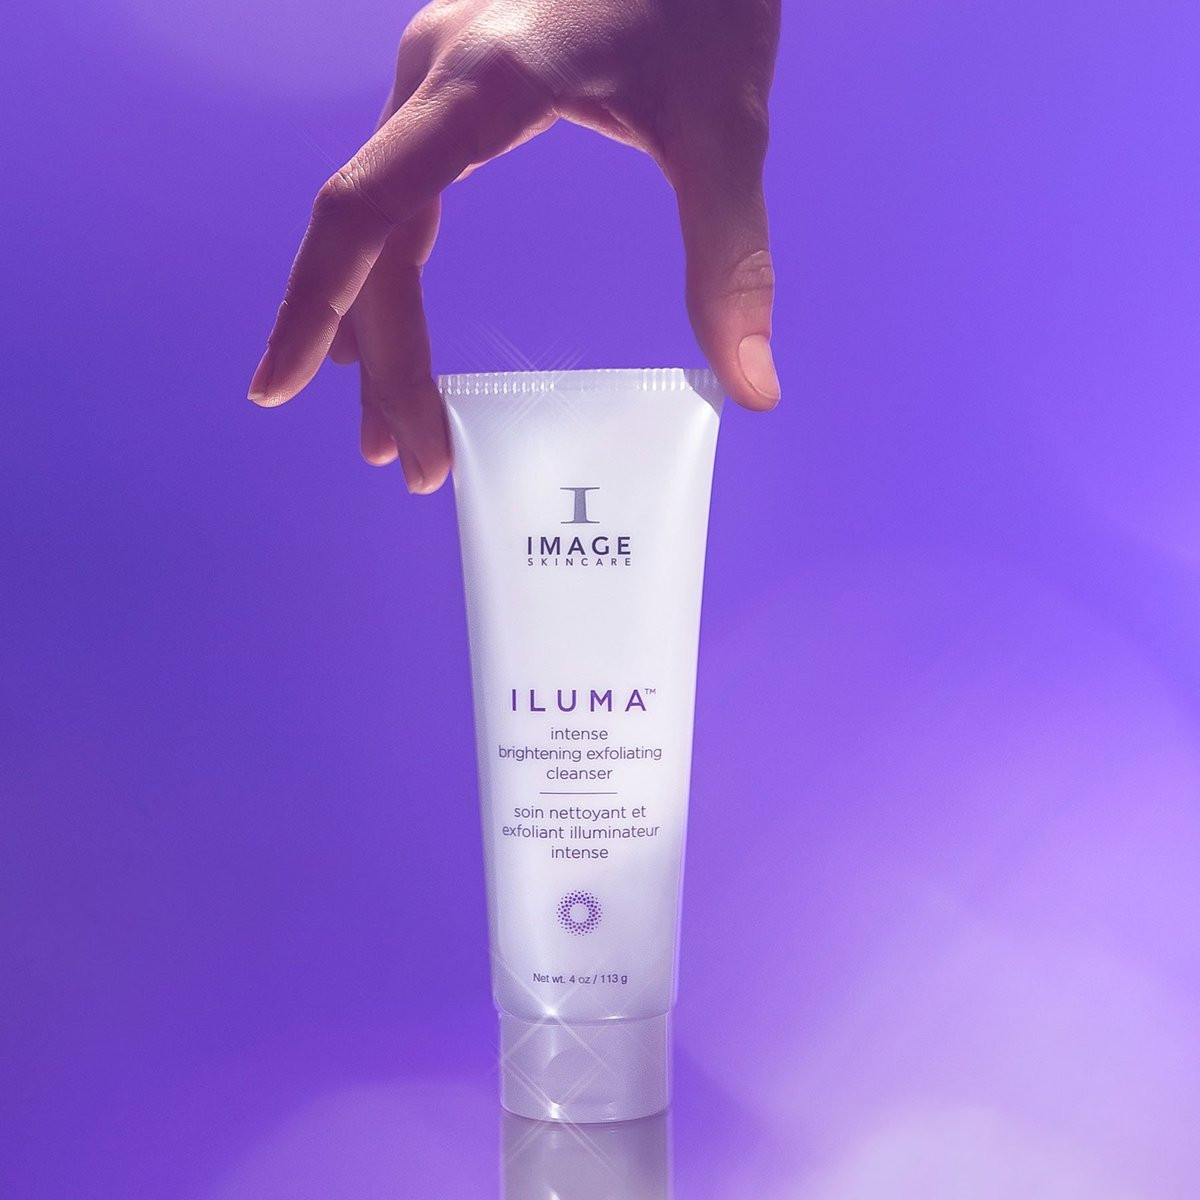 ILUMA INTENSE BRIGHTENING EXFOLIATING CLEANSER Your skin's first defense against dullness. Jumpstart your daily brightening routine with this luxurious cream-to-foam cleanser. It sweeps away impurities and exfoliates in one step to help visibly brighten and refine the skin. It's mushroom-derived enzyme, bamboo spheres and smart-sensing beads gently exfoliate dull skin, while natural extracts help boost luminosity and promote hydration. The cushiony, non-stripping formula leaves the skin feeling soft and refreshed.